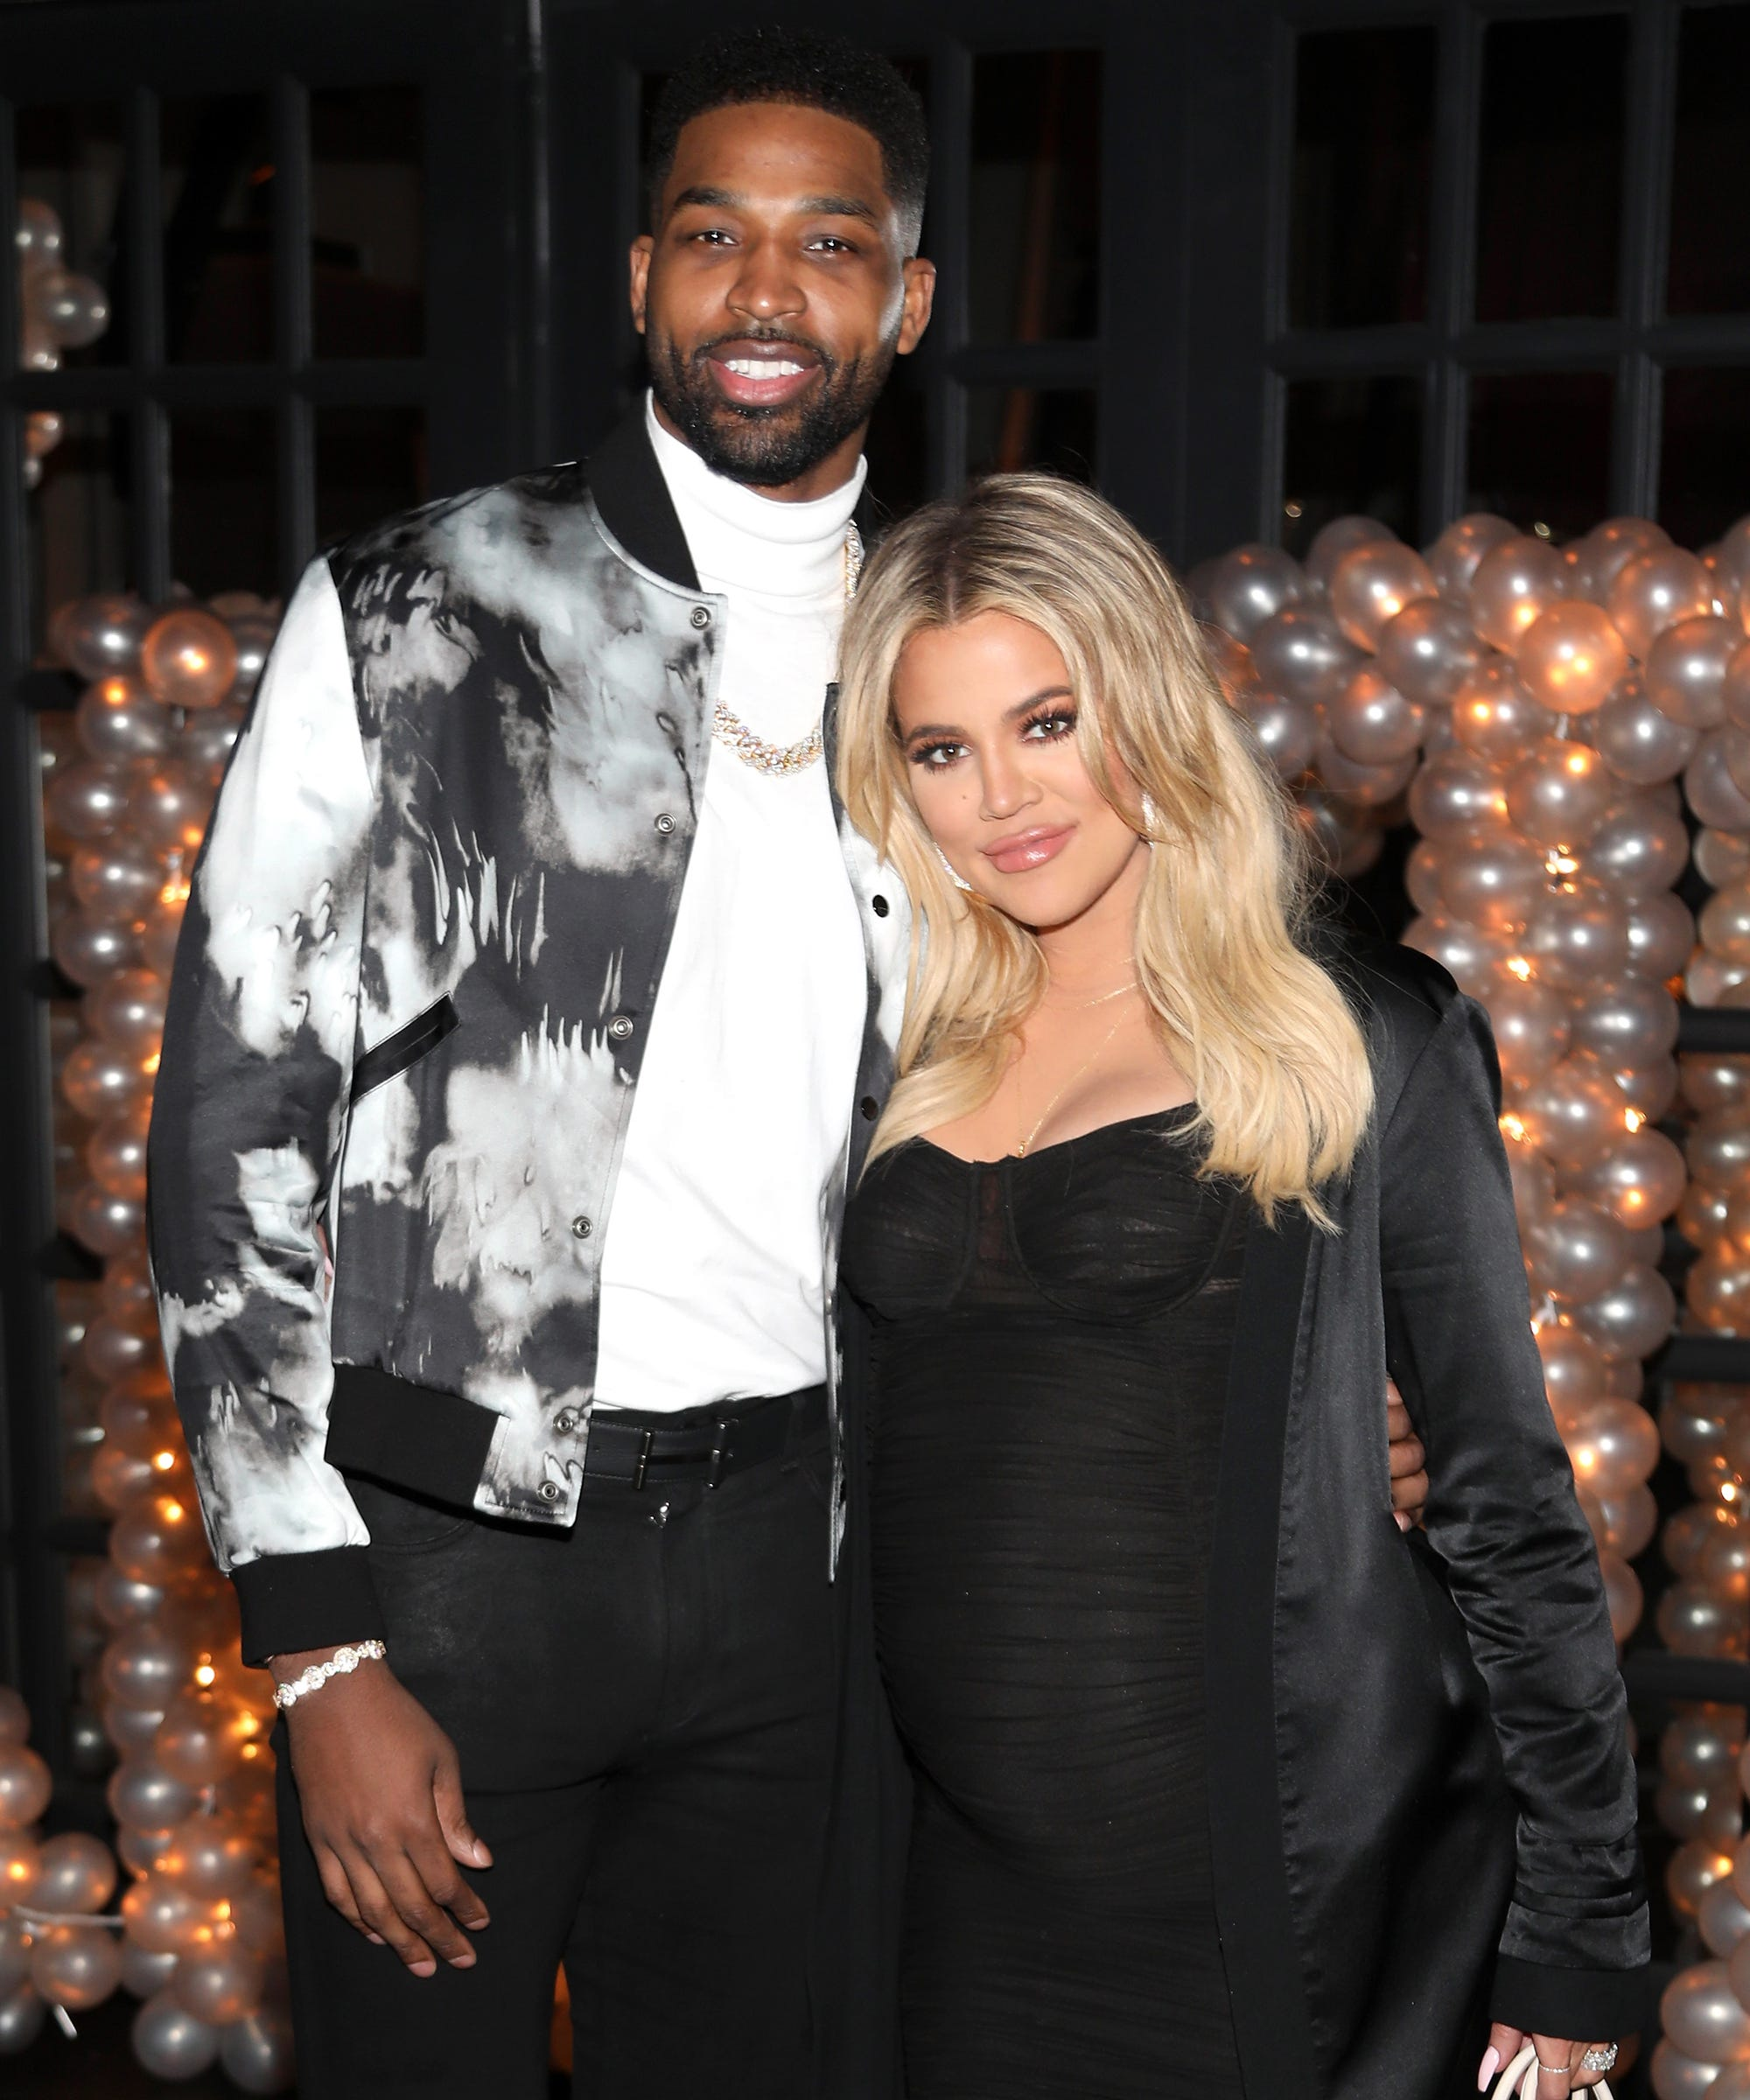 KUWTK Is Finally Getting To The Tristan-Jordyn Drama, But Is Khloé Ready To Handle It?